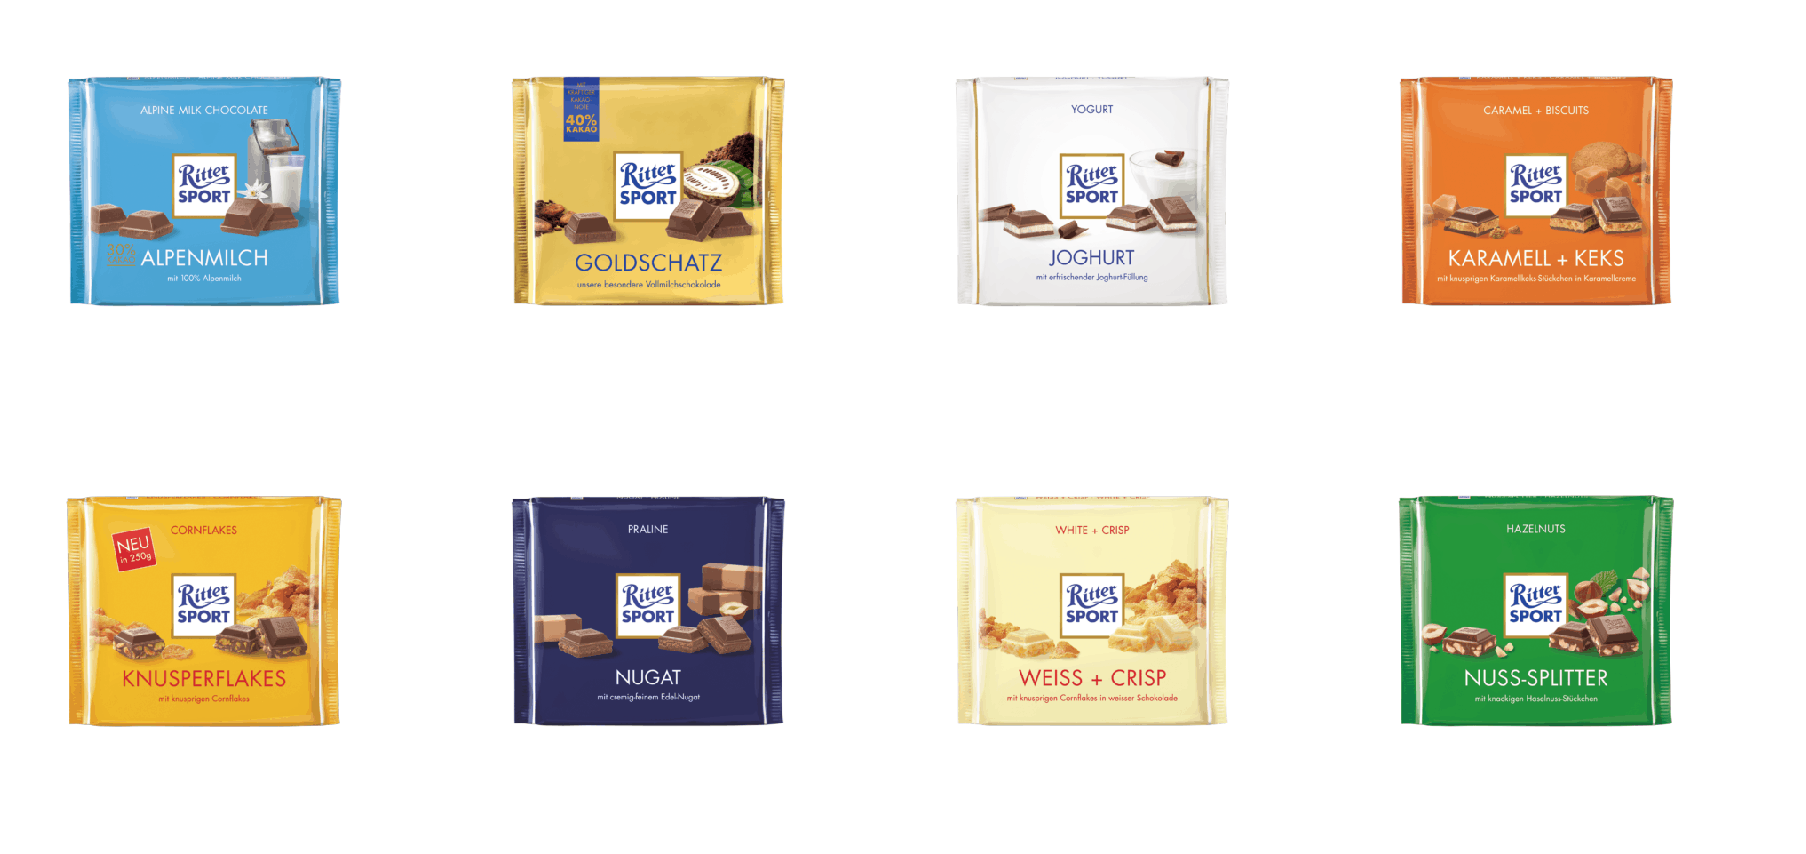 Ritter Sport chocolate from Germany